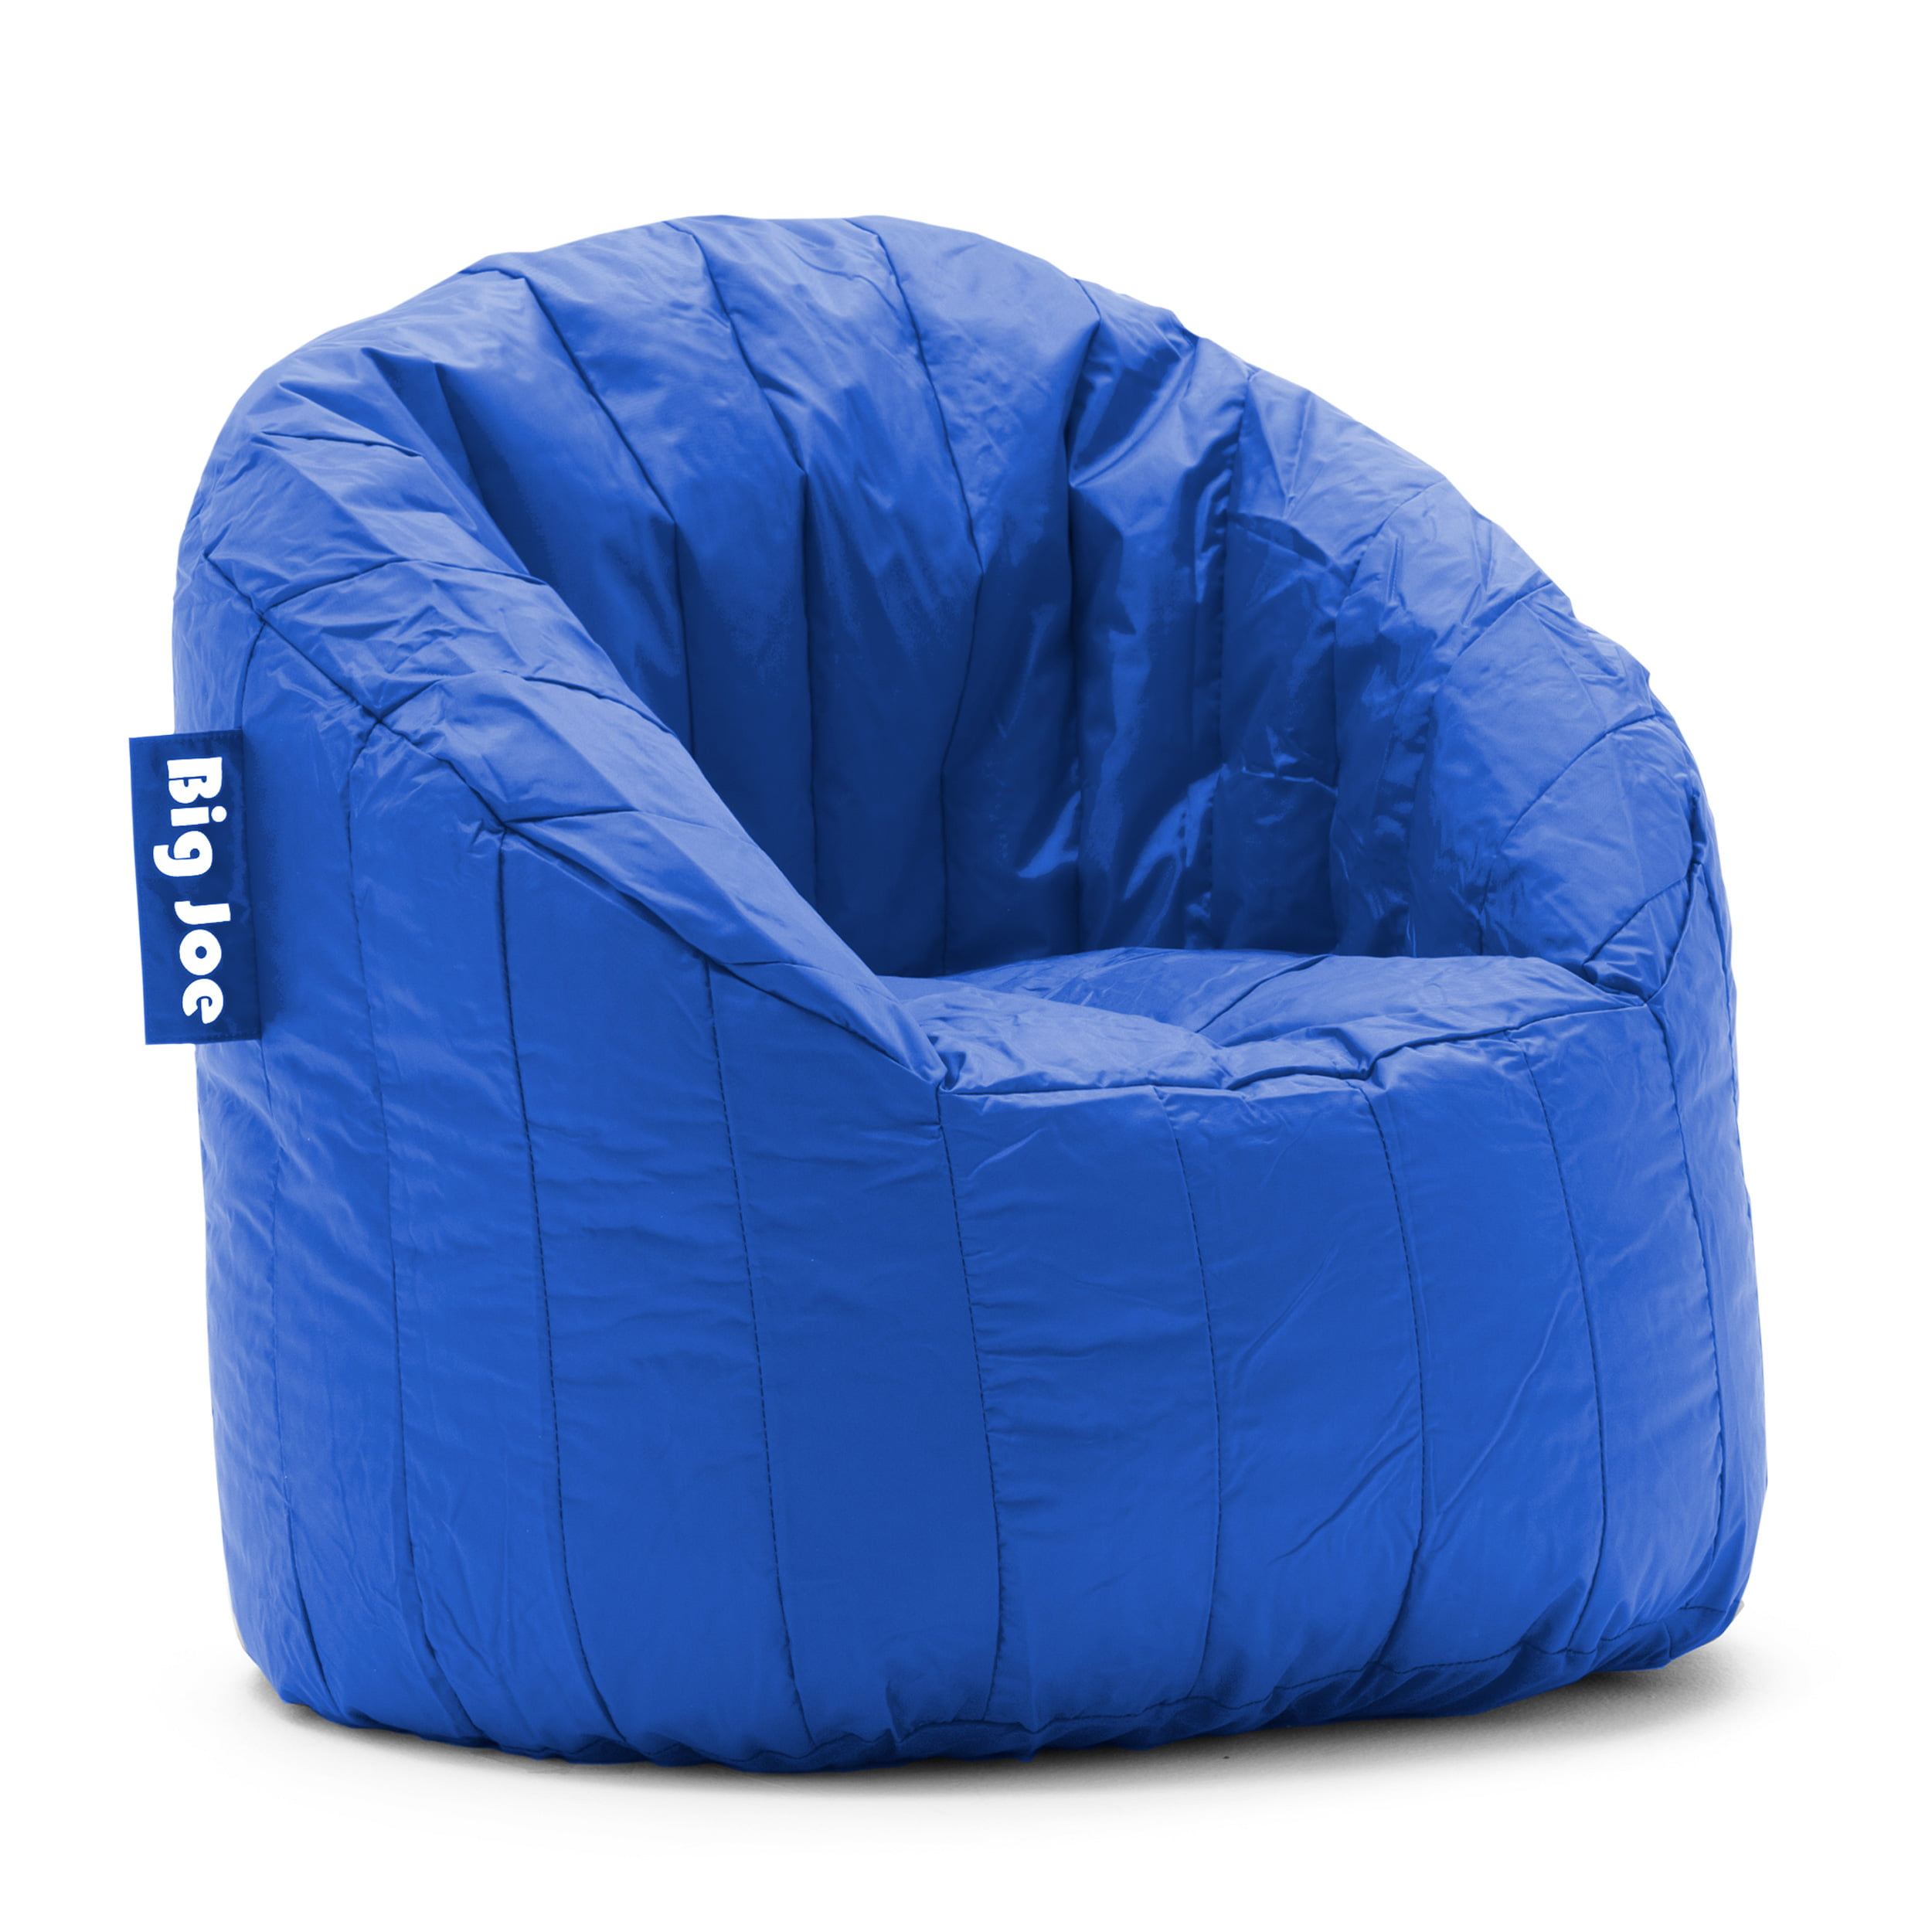 chairs chair proprioception axd thumbnail sensory bean teardrop solutions bag flaghouse xl beanbag